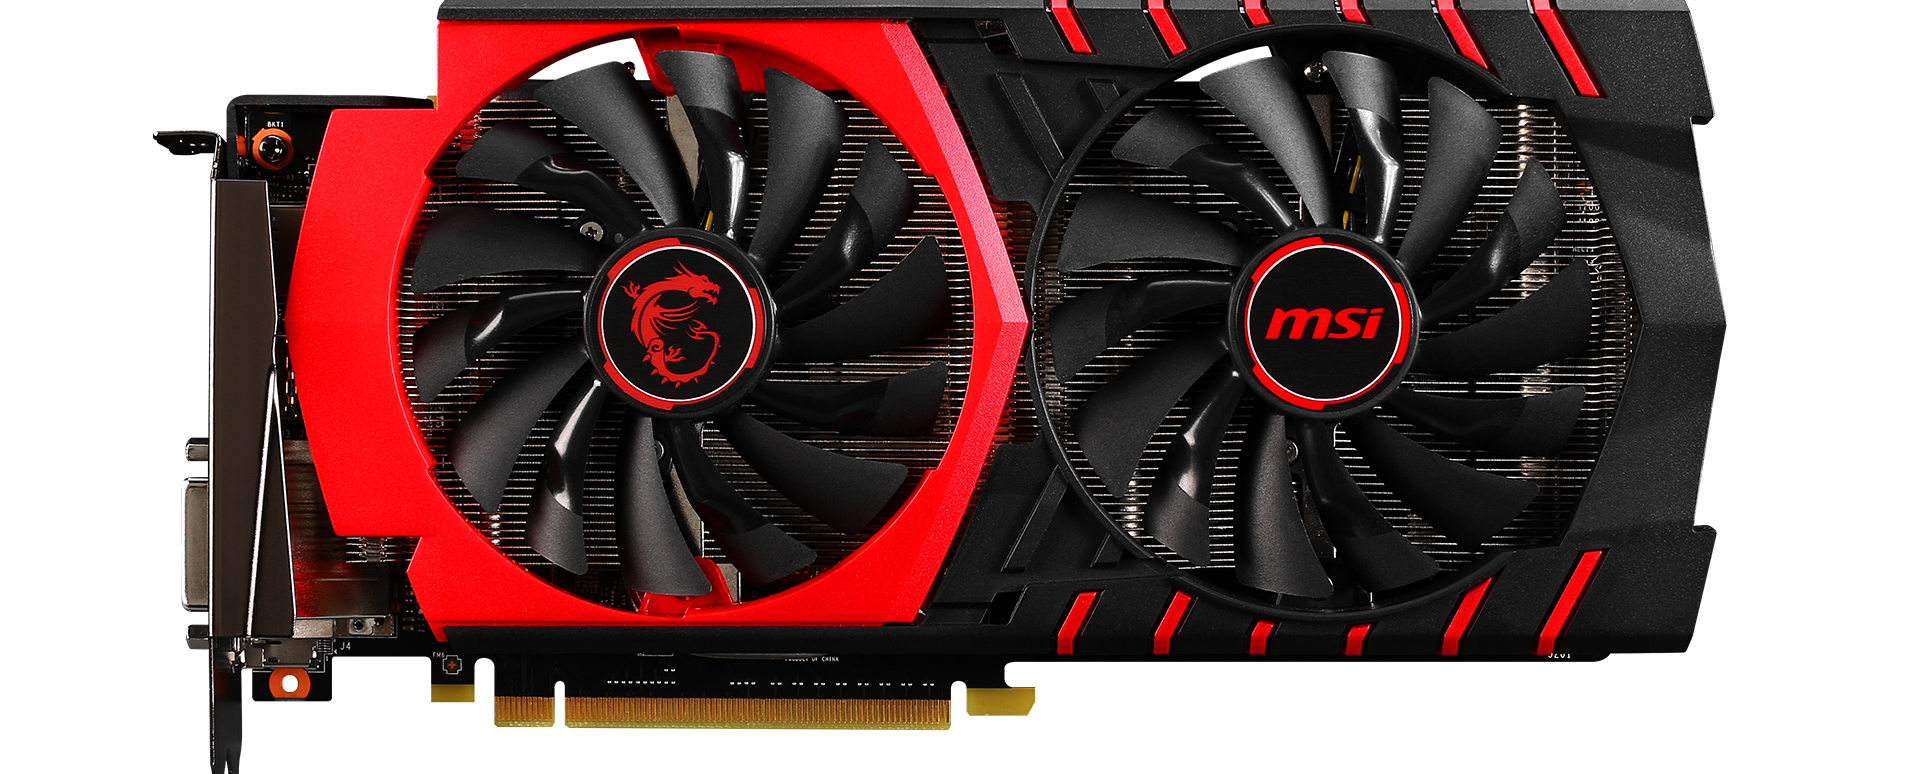 msi-geforce-gtx-960-gaming-2g-top-view